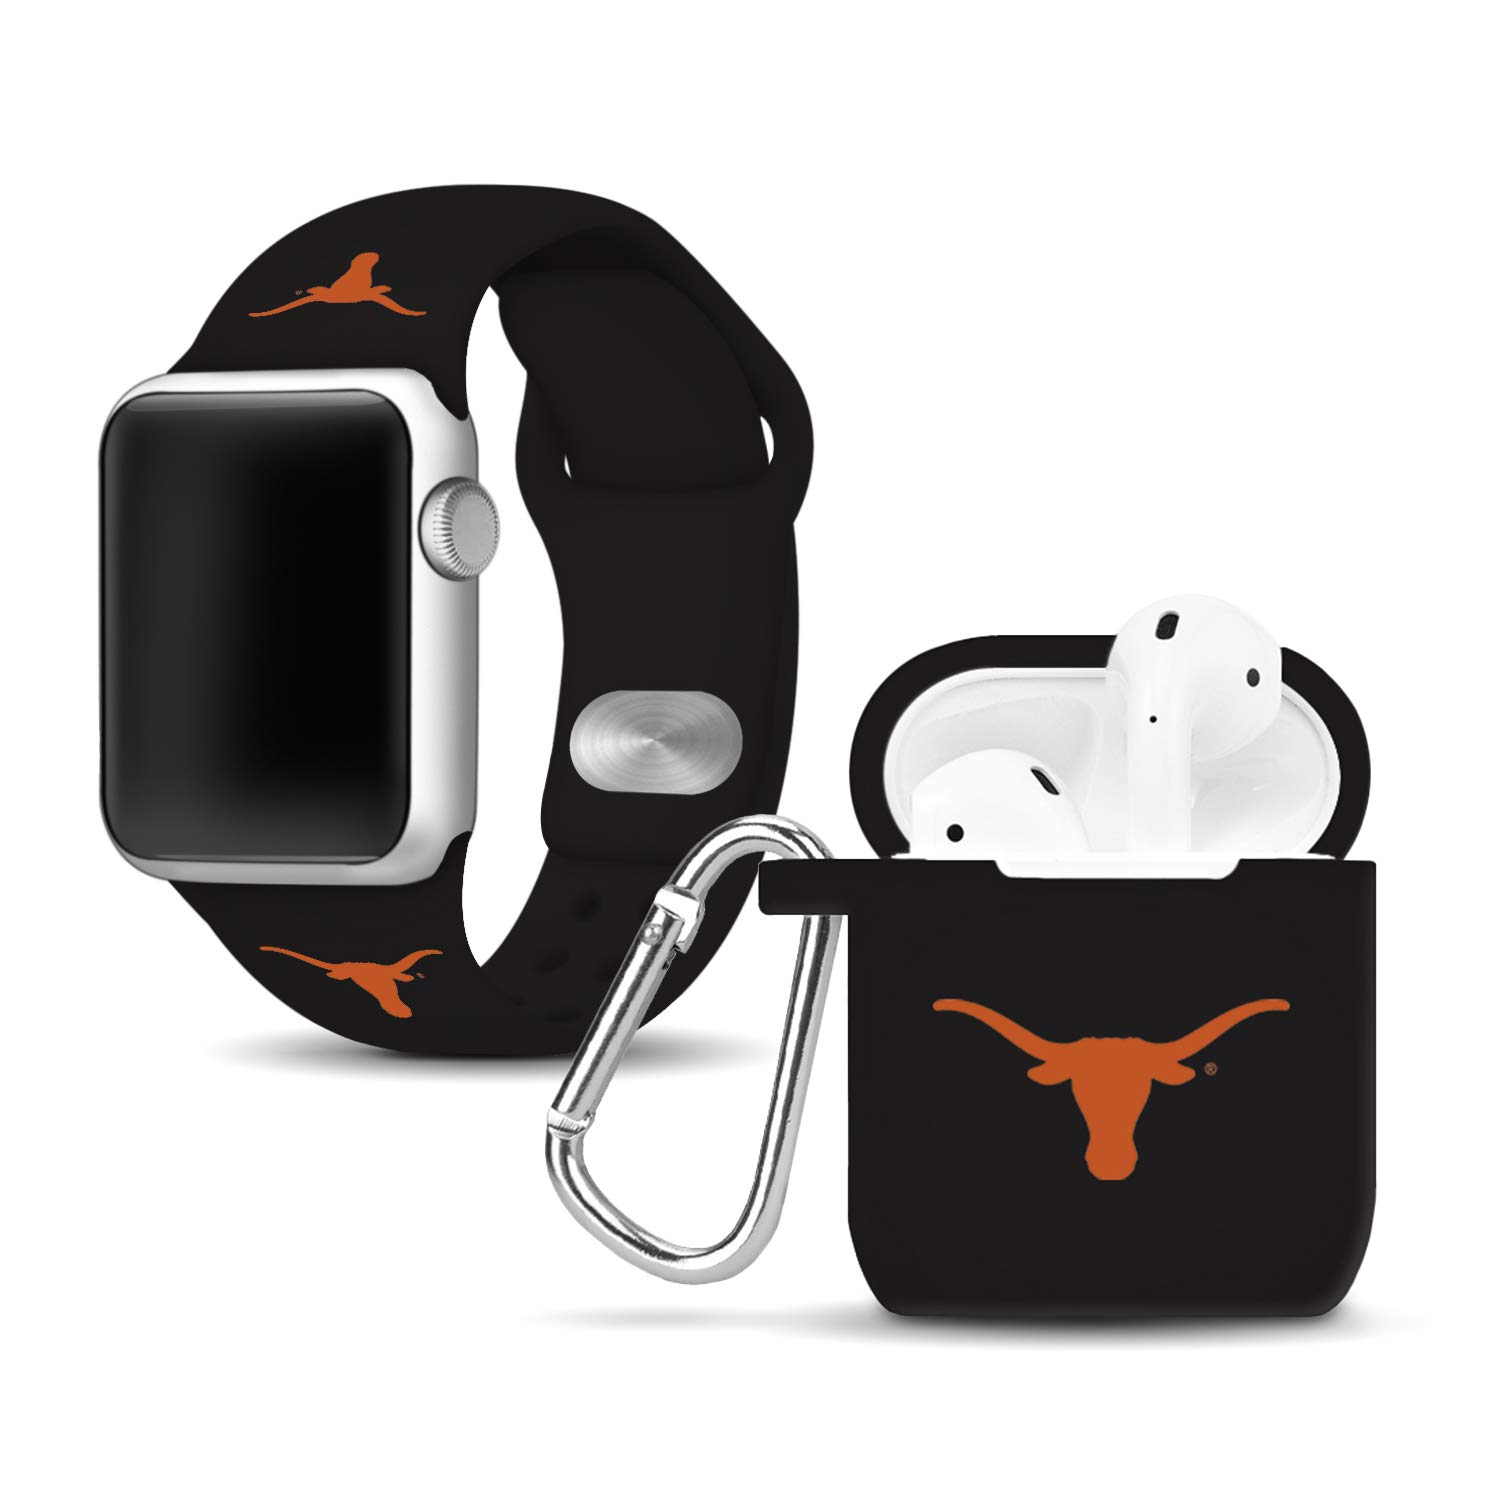 Affinity Bands Texas Longhorns Silicone Watch Band and Case Cover Combo Compatible with Apple Watch and AirPod Case by Affinity Bands